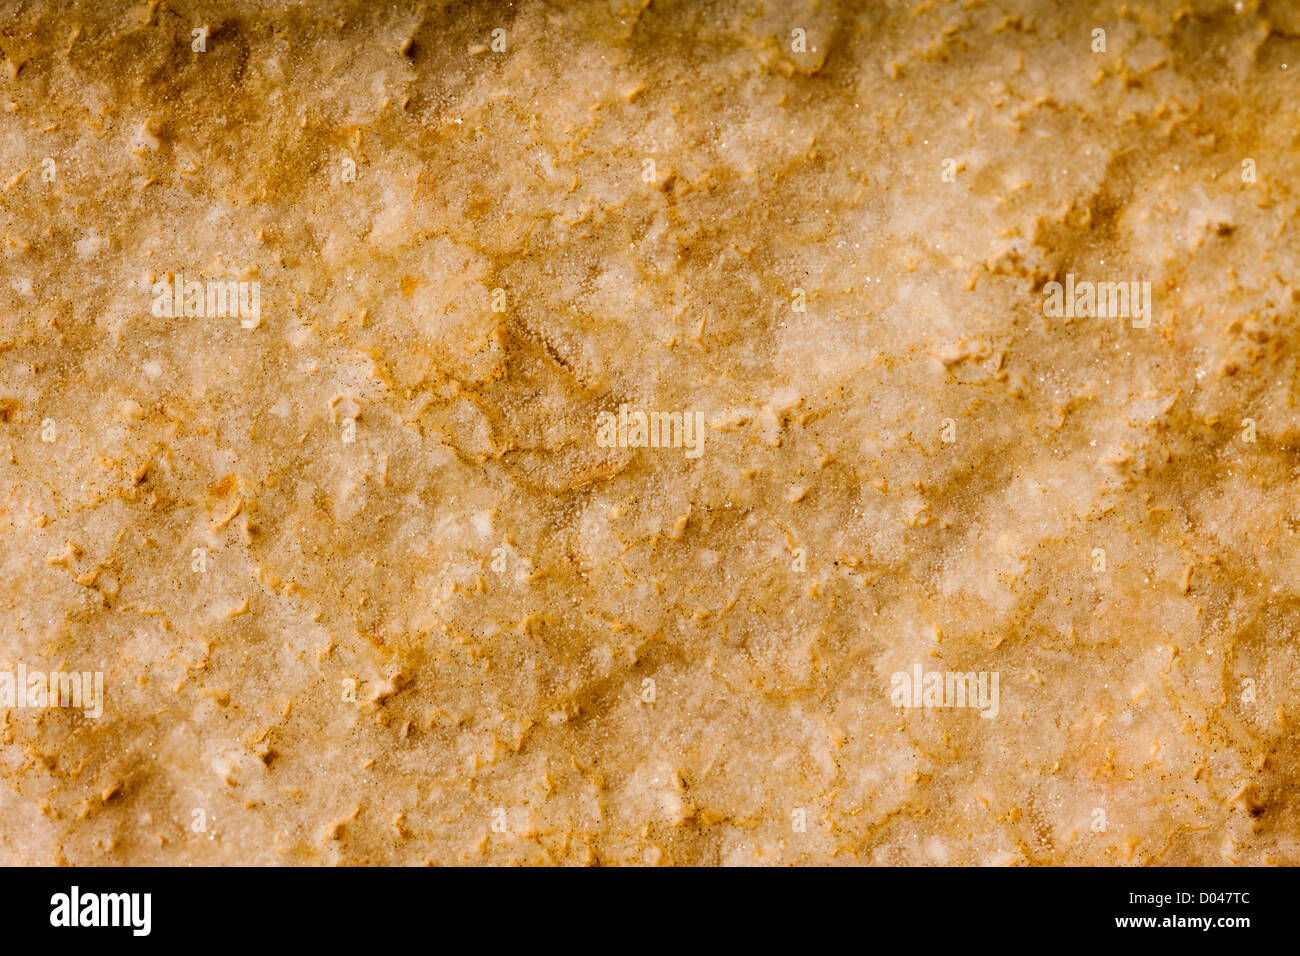 Closeup of a dark limestone rock. Perfect as an earthy background or texture. - Stock Image